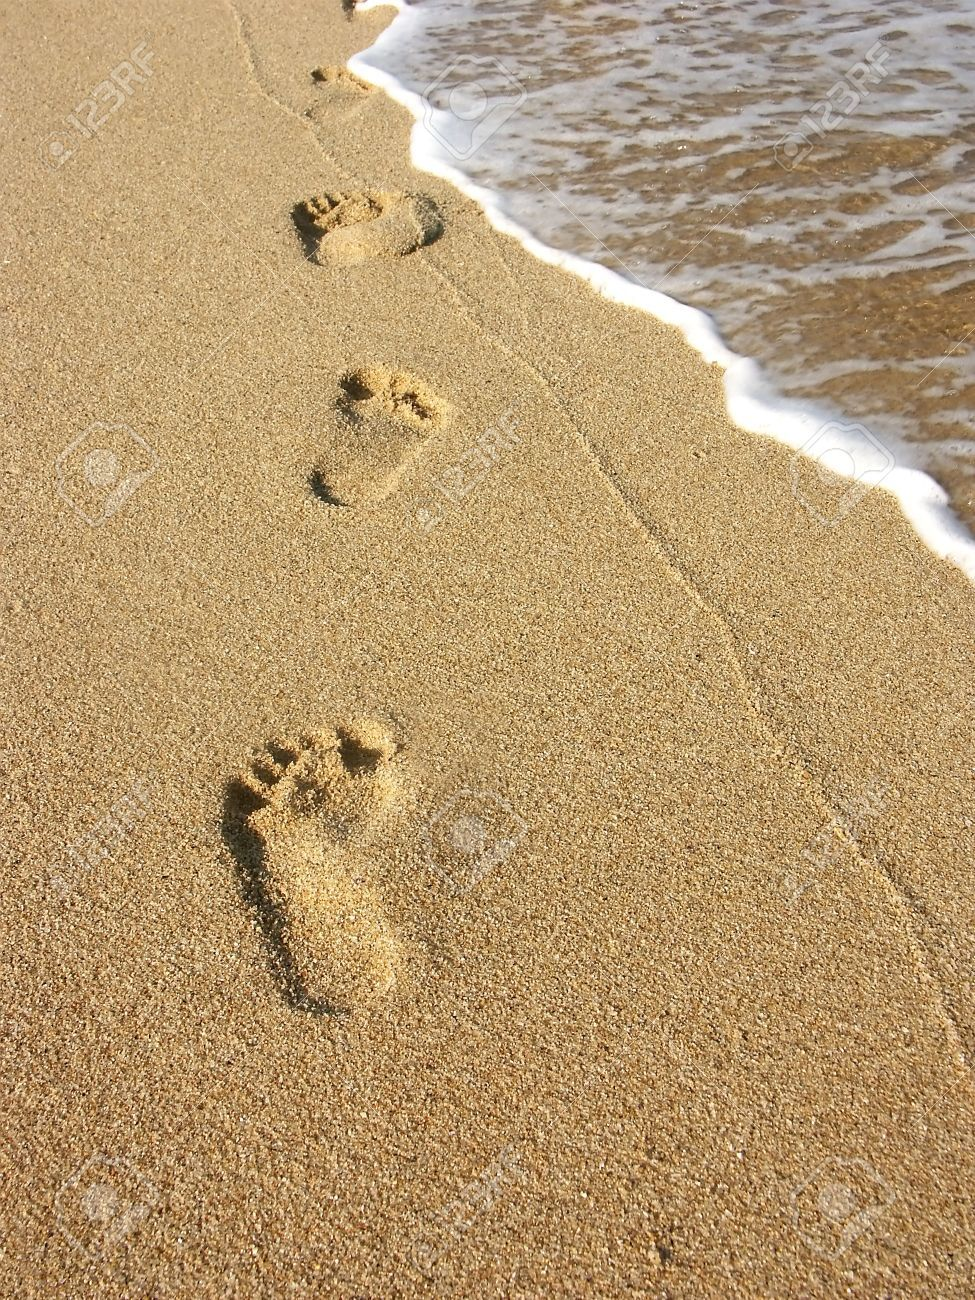 Footprints in the sand clipart free clipart royalty free stock Footprints in the sand clipart free 6 » Clipart Portal clipart royalty free stock